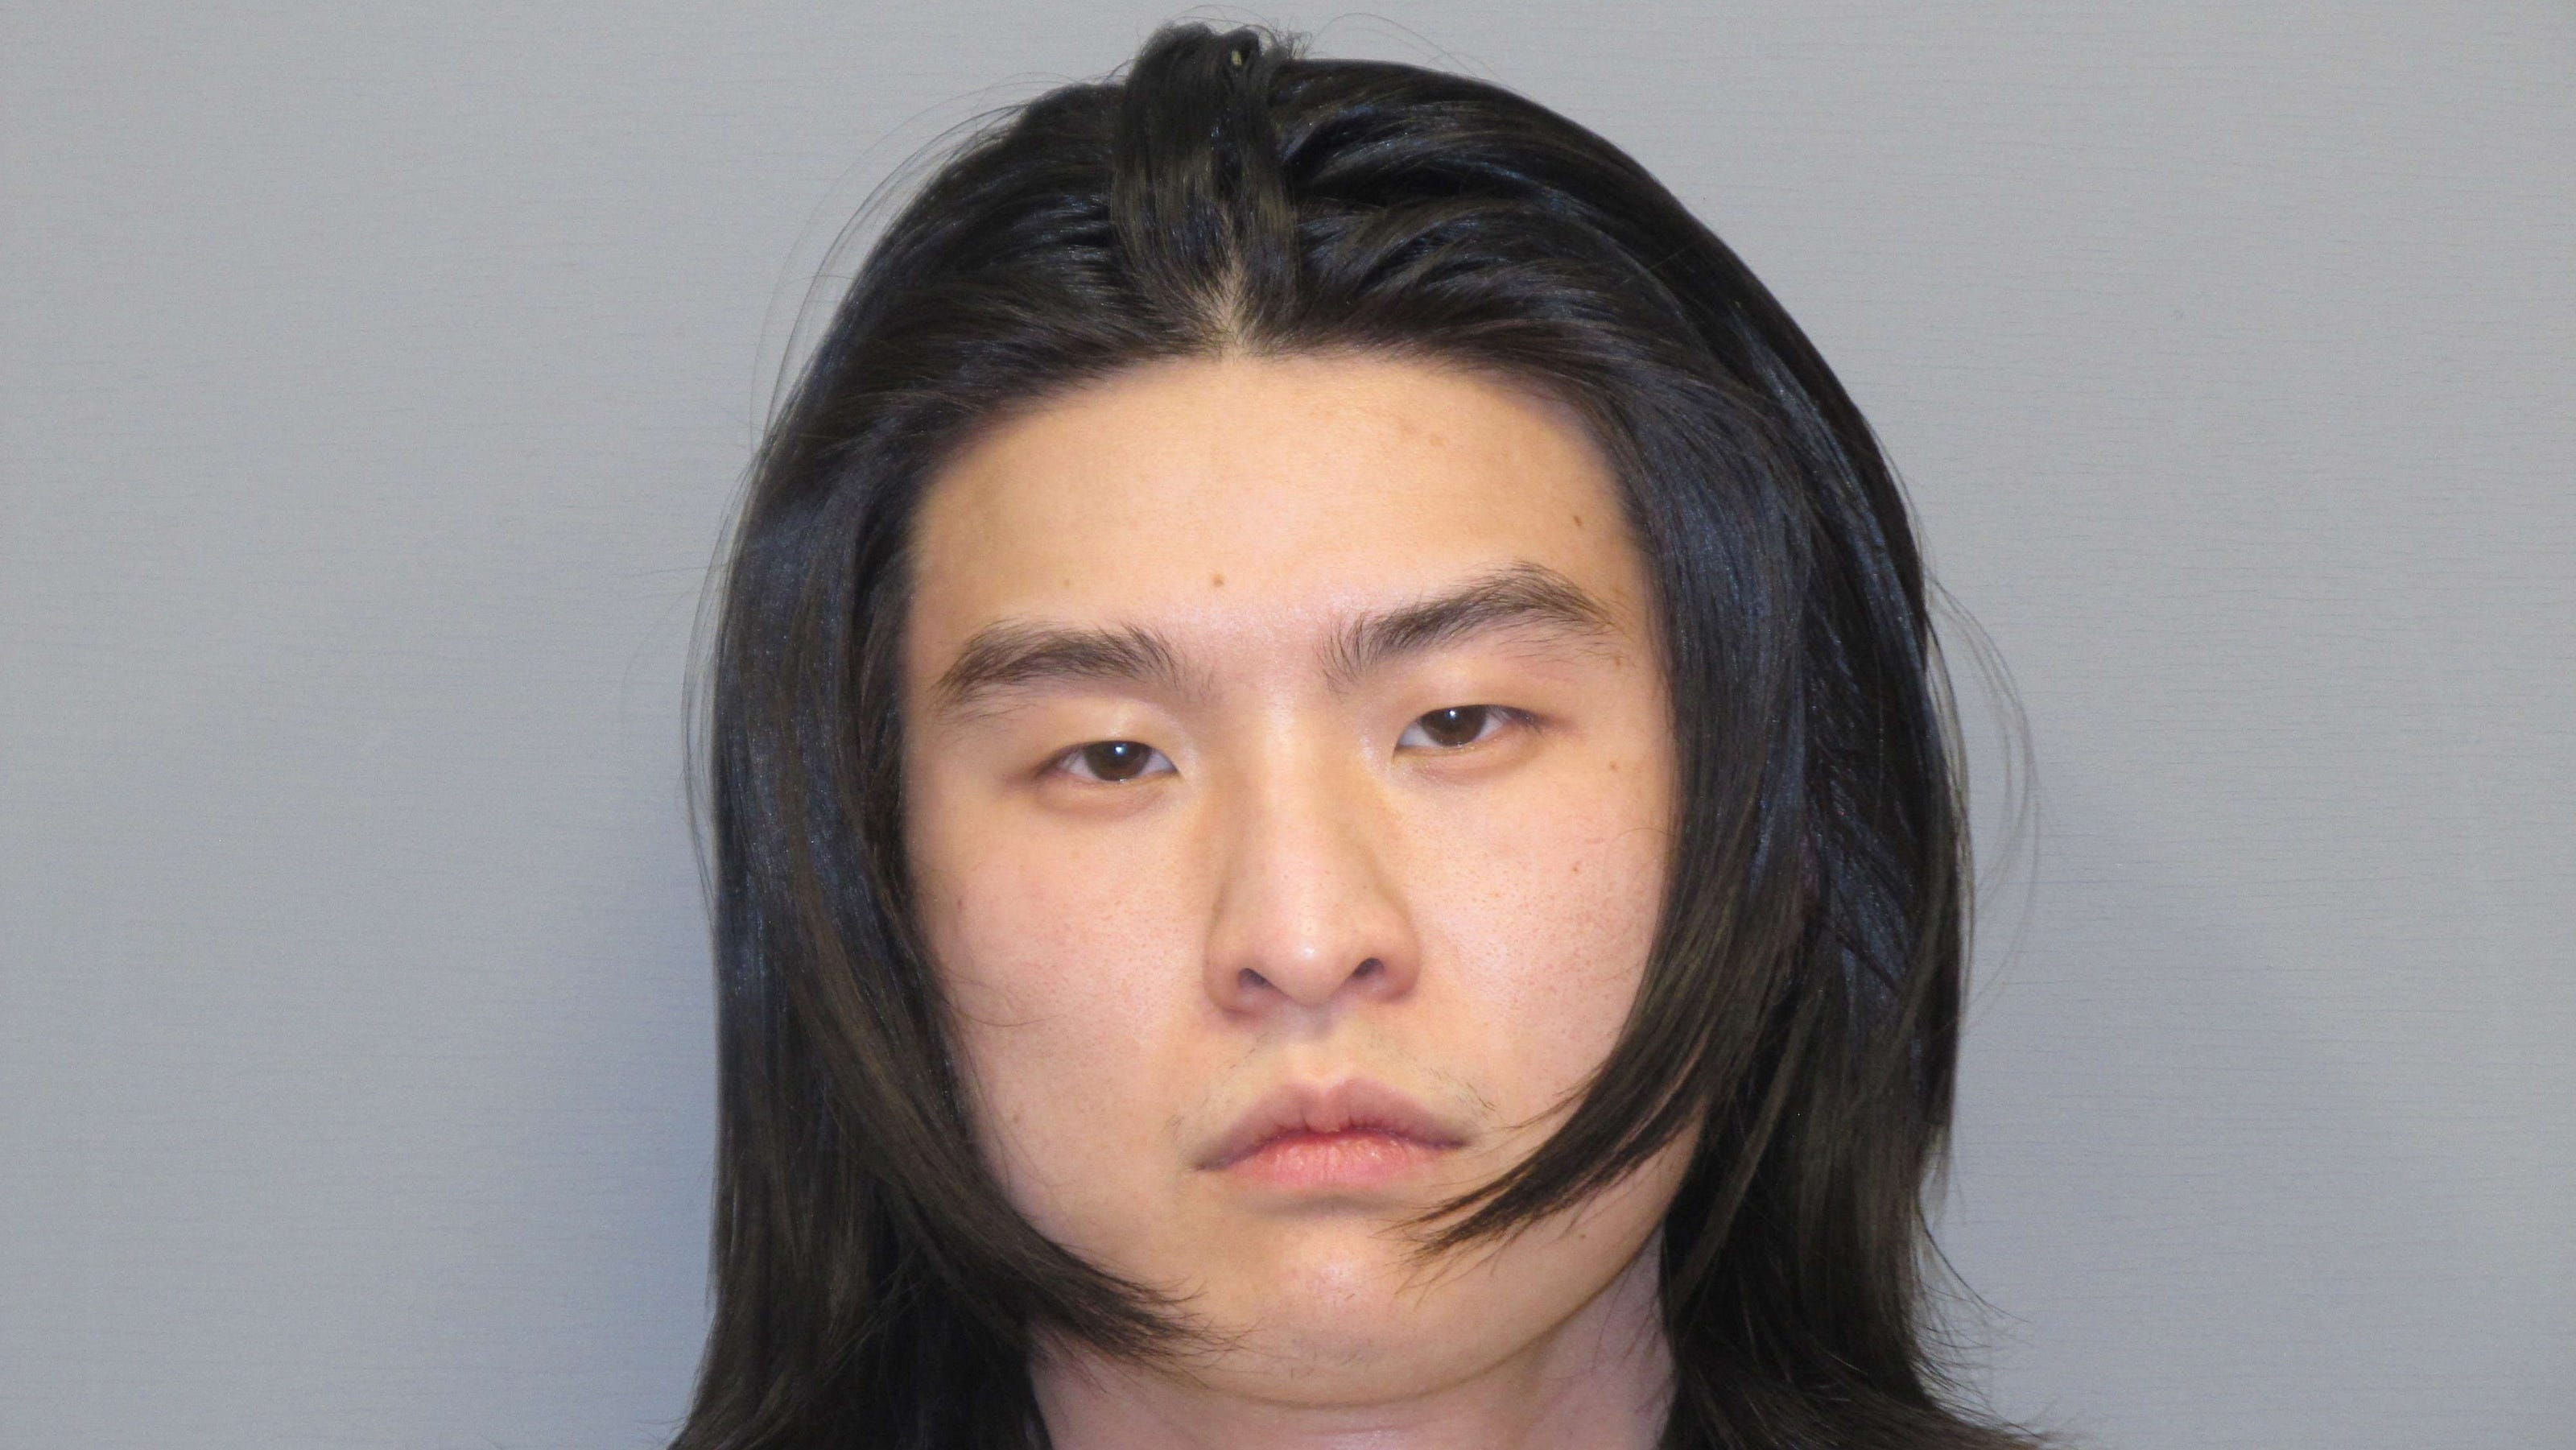 Guns and other illegal weapons found in Natick man's home, police say